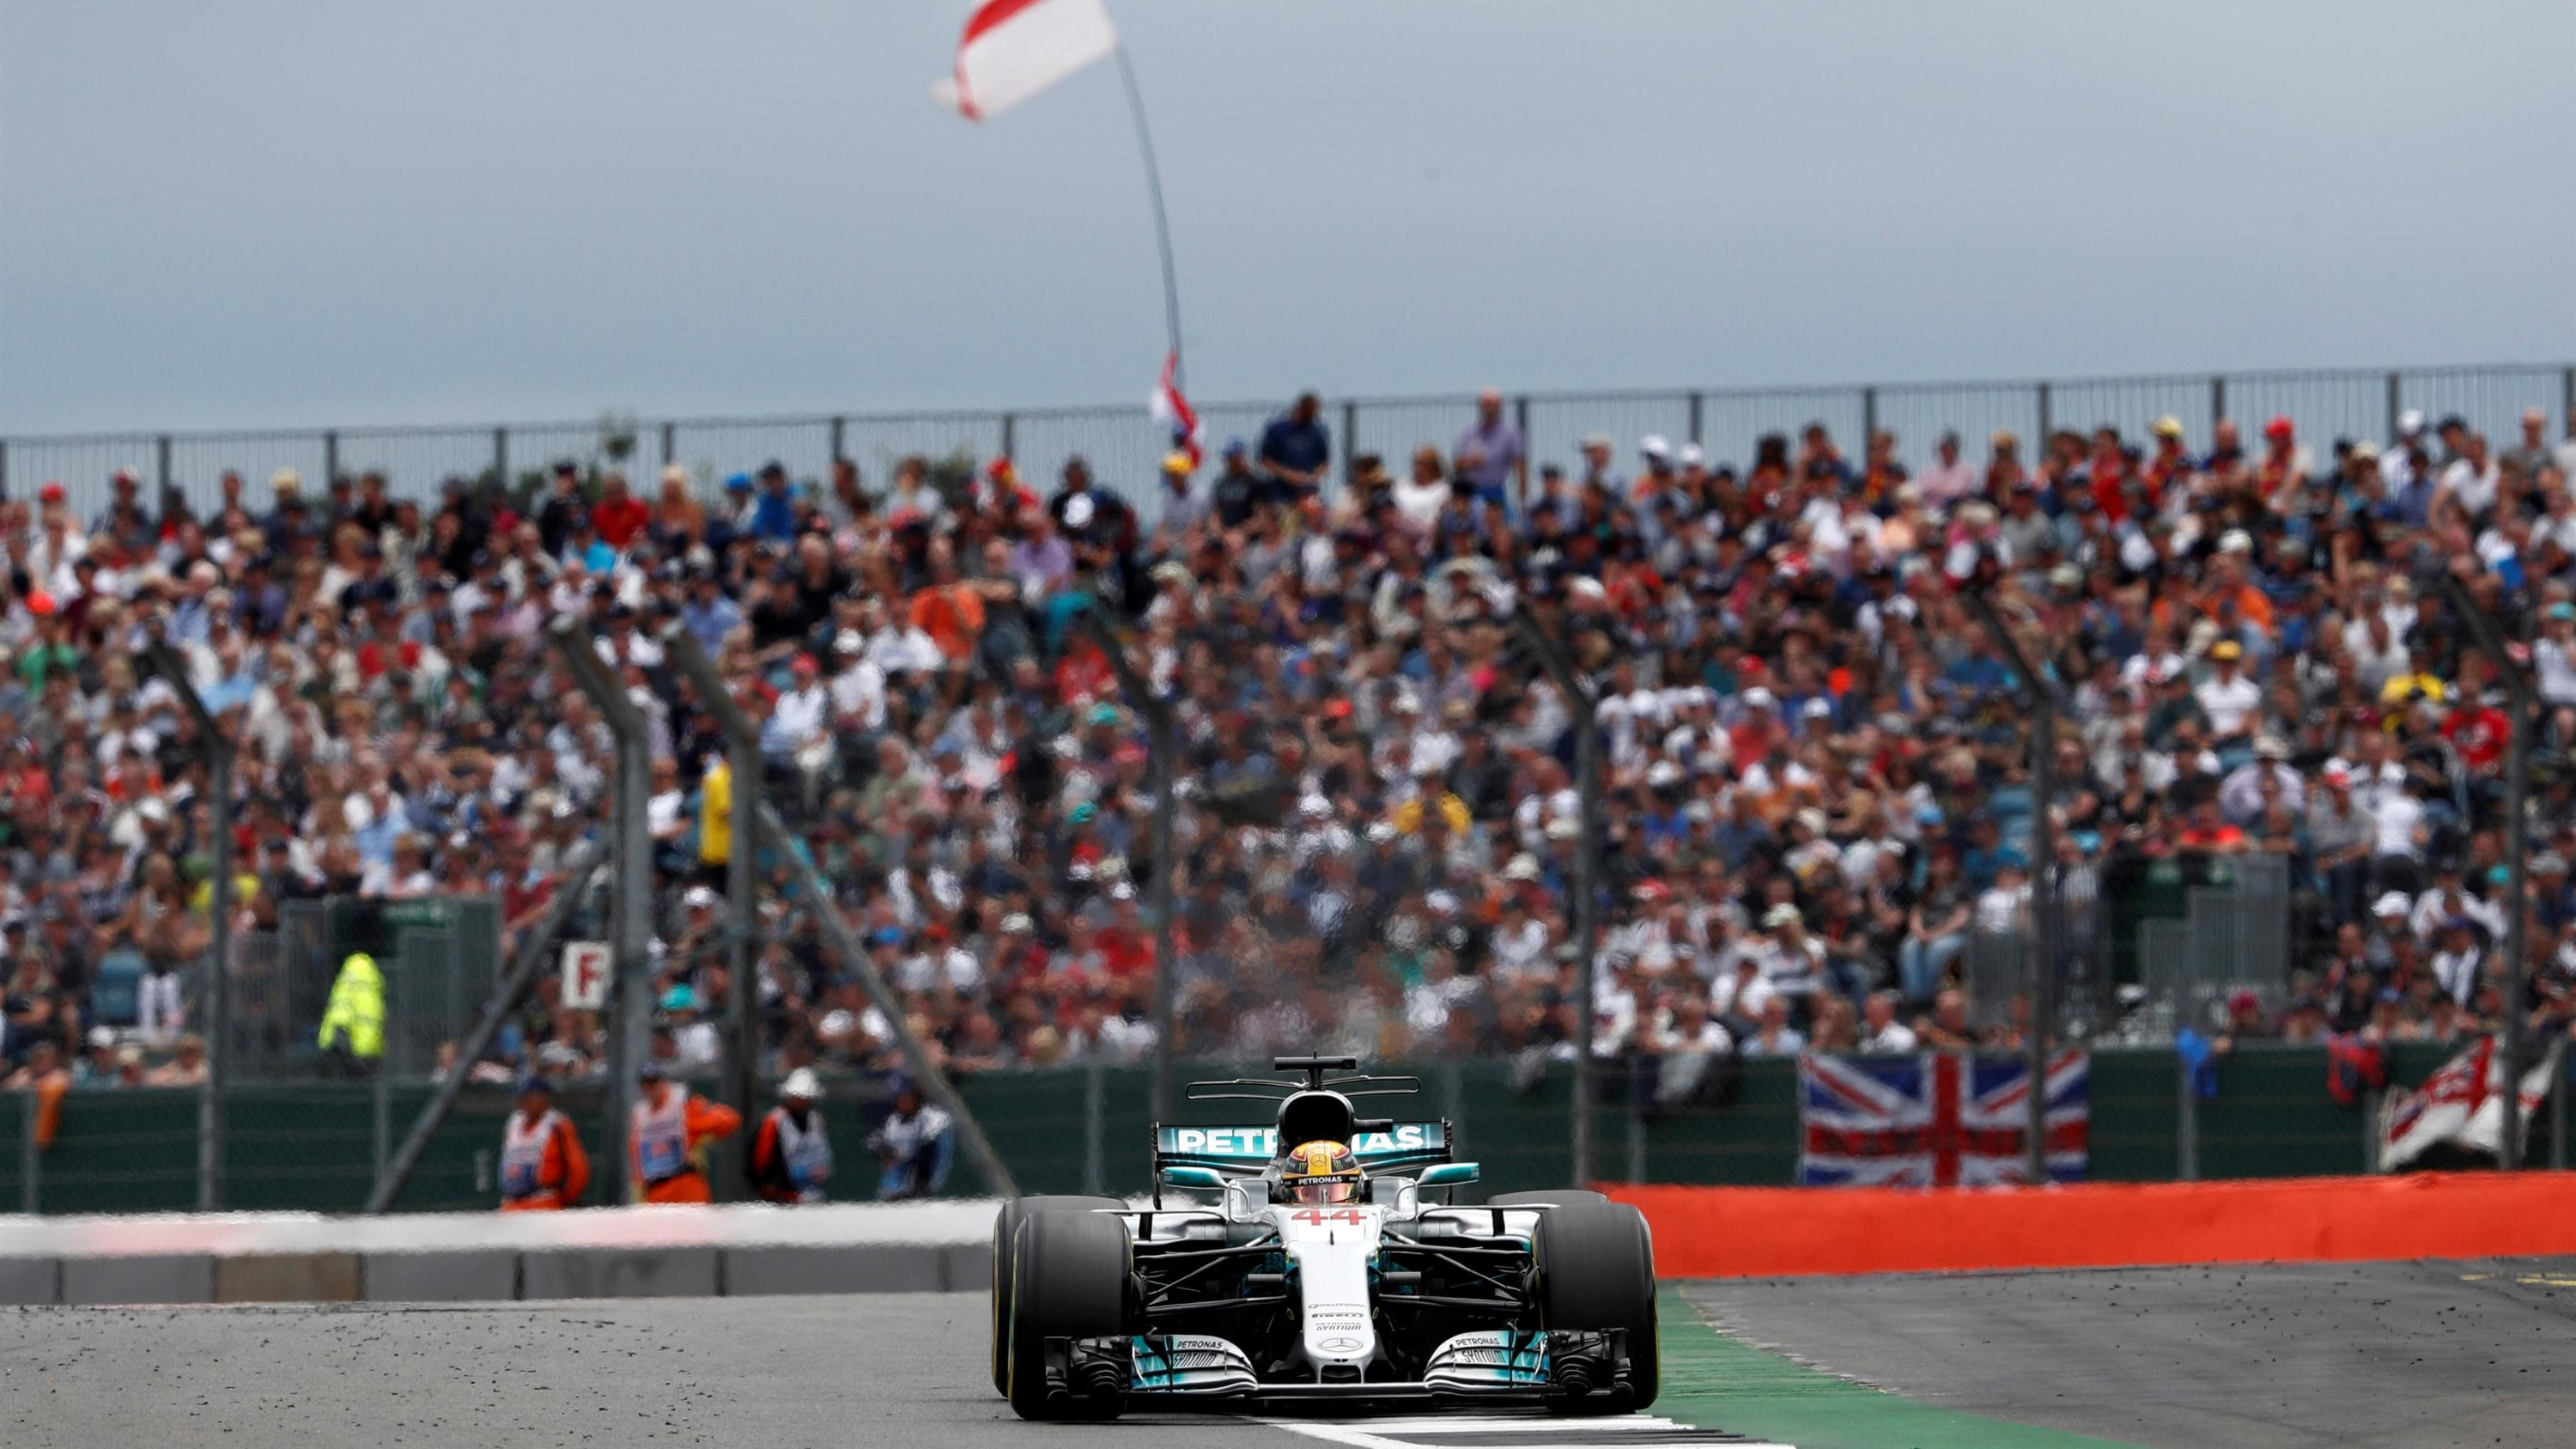 Hertfordshire's Lewis Hamilton in practice for French F1 Grand Prix